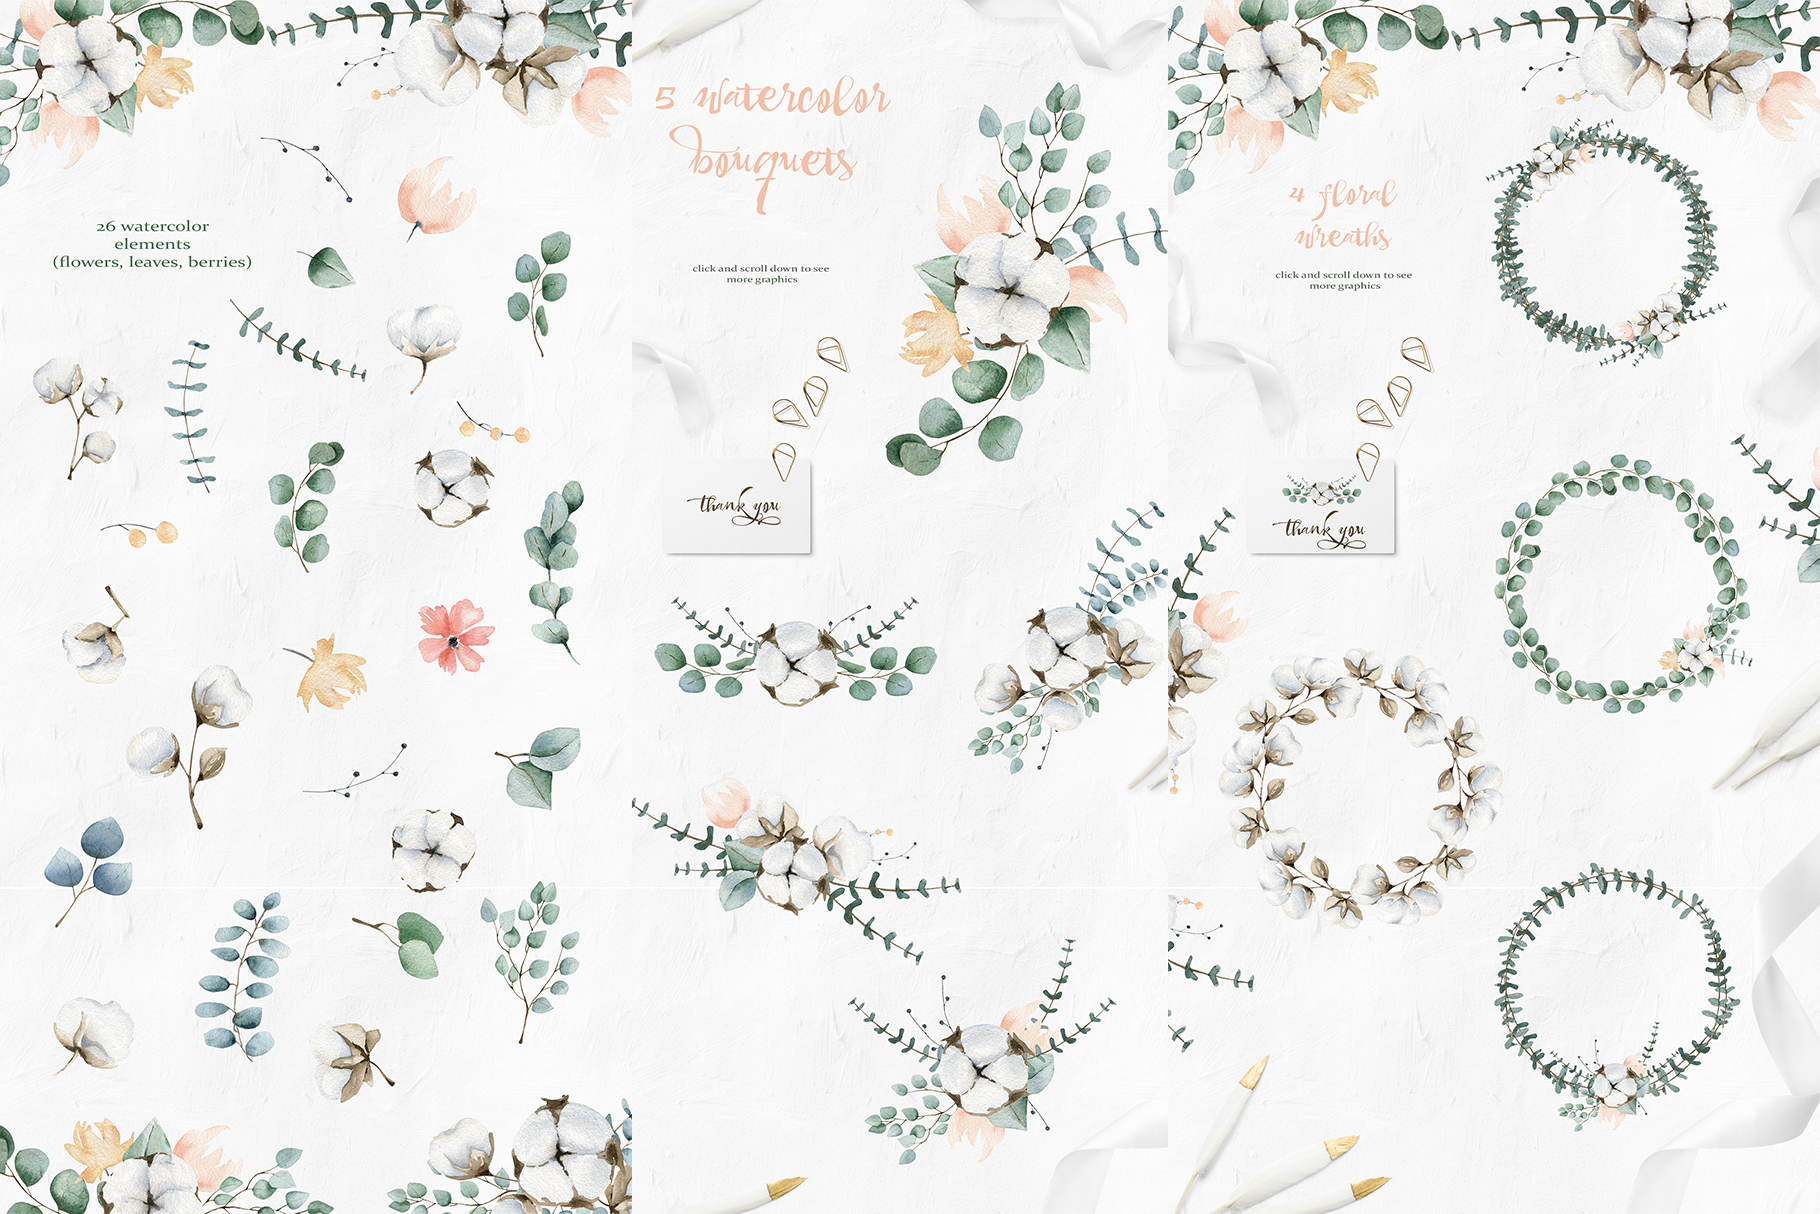 Cotton and Eucalyptus watercolor spring clipart example image 4